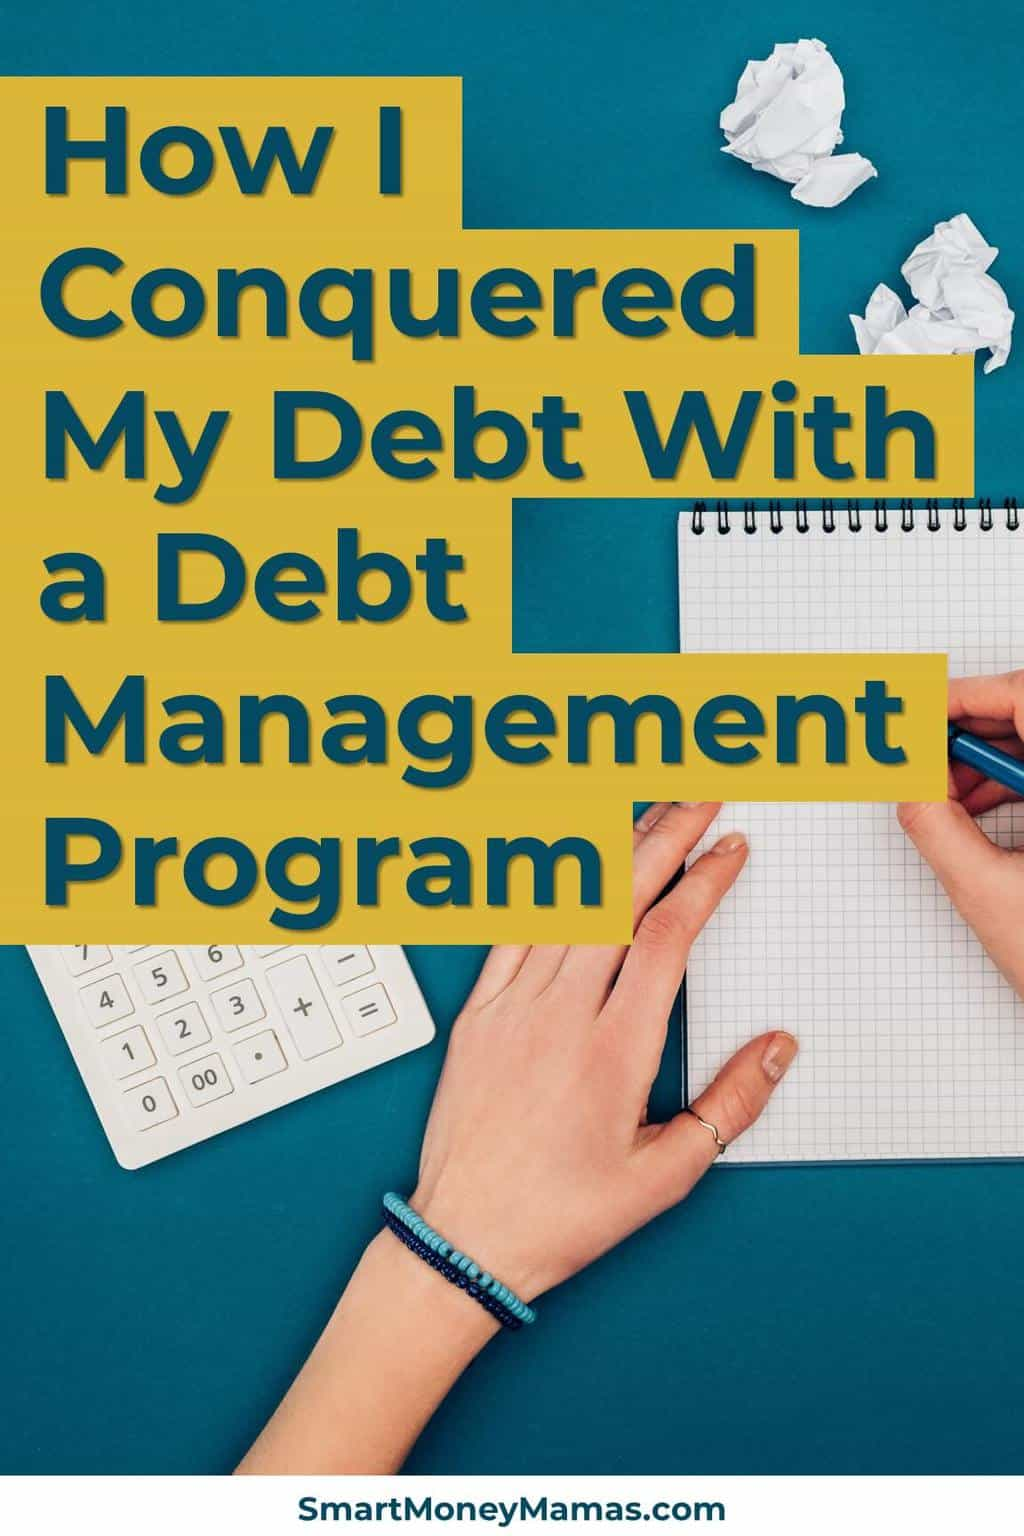 How I conquered my debt with a debt management program